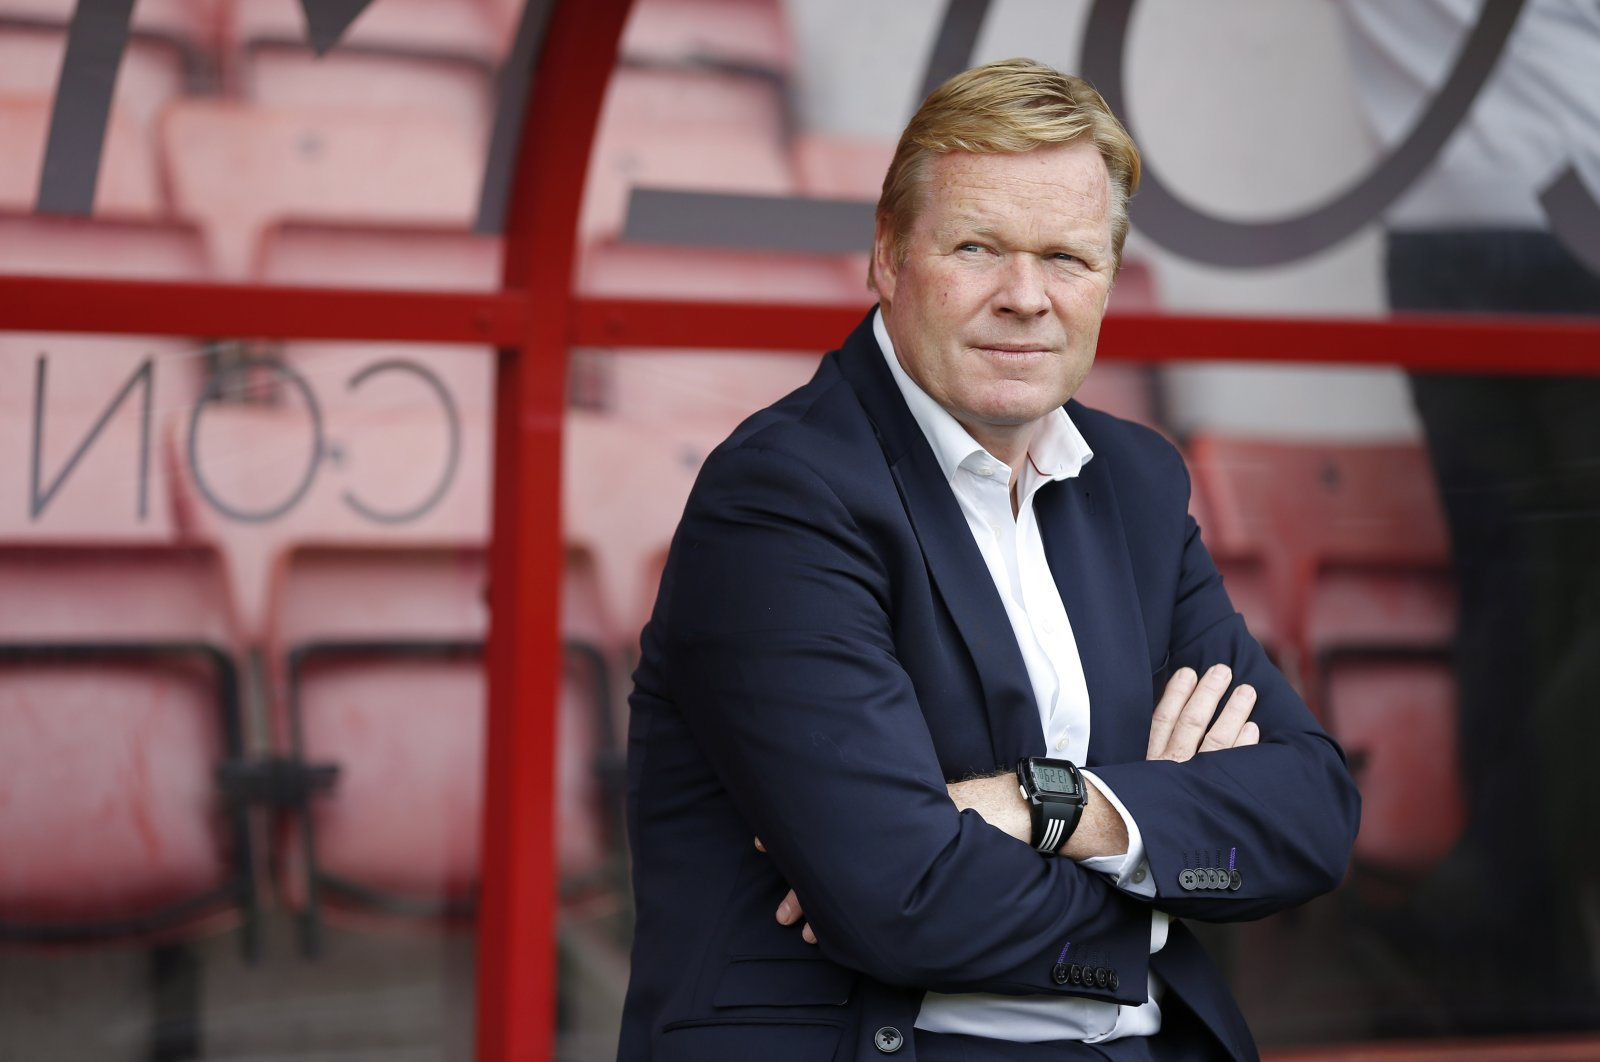 Ronald Koeman before a game between AFC Bournemouth and Everton, in Bournemouth, Britain, Sept. 24, 2016. (Reuters Photo)